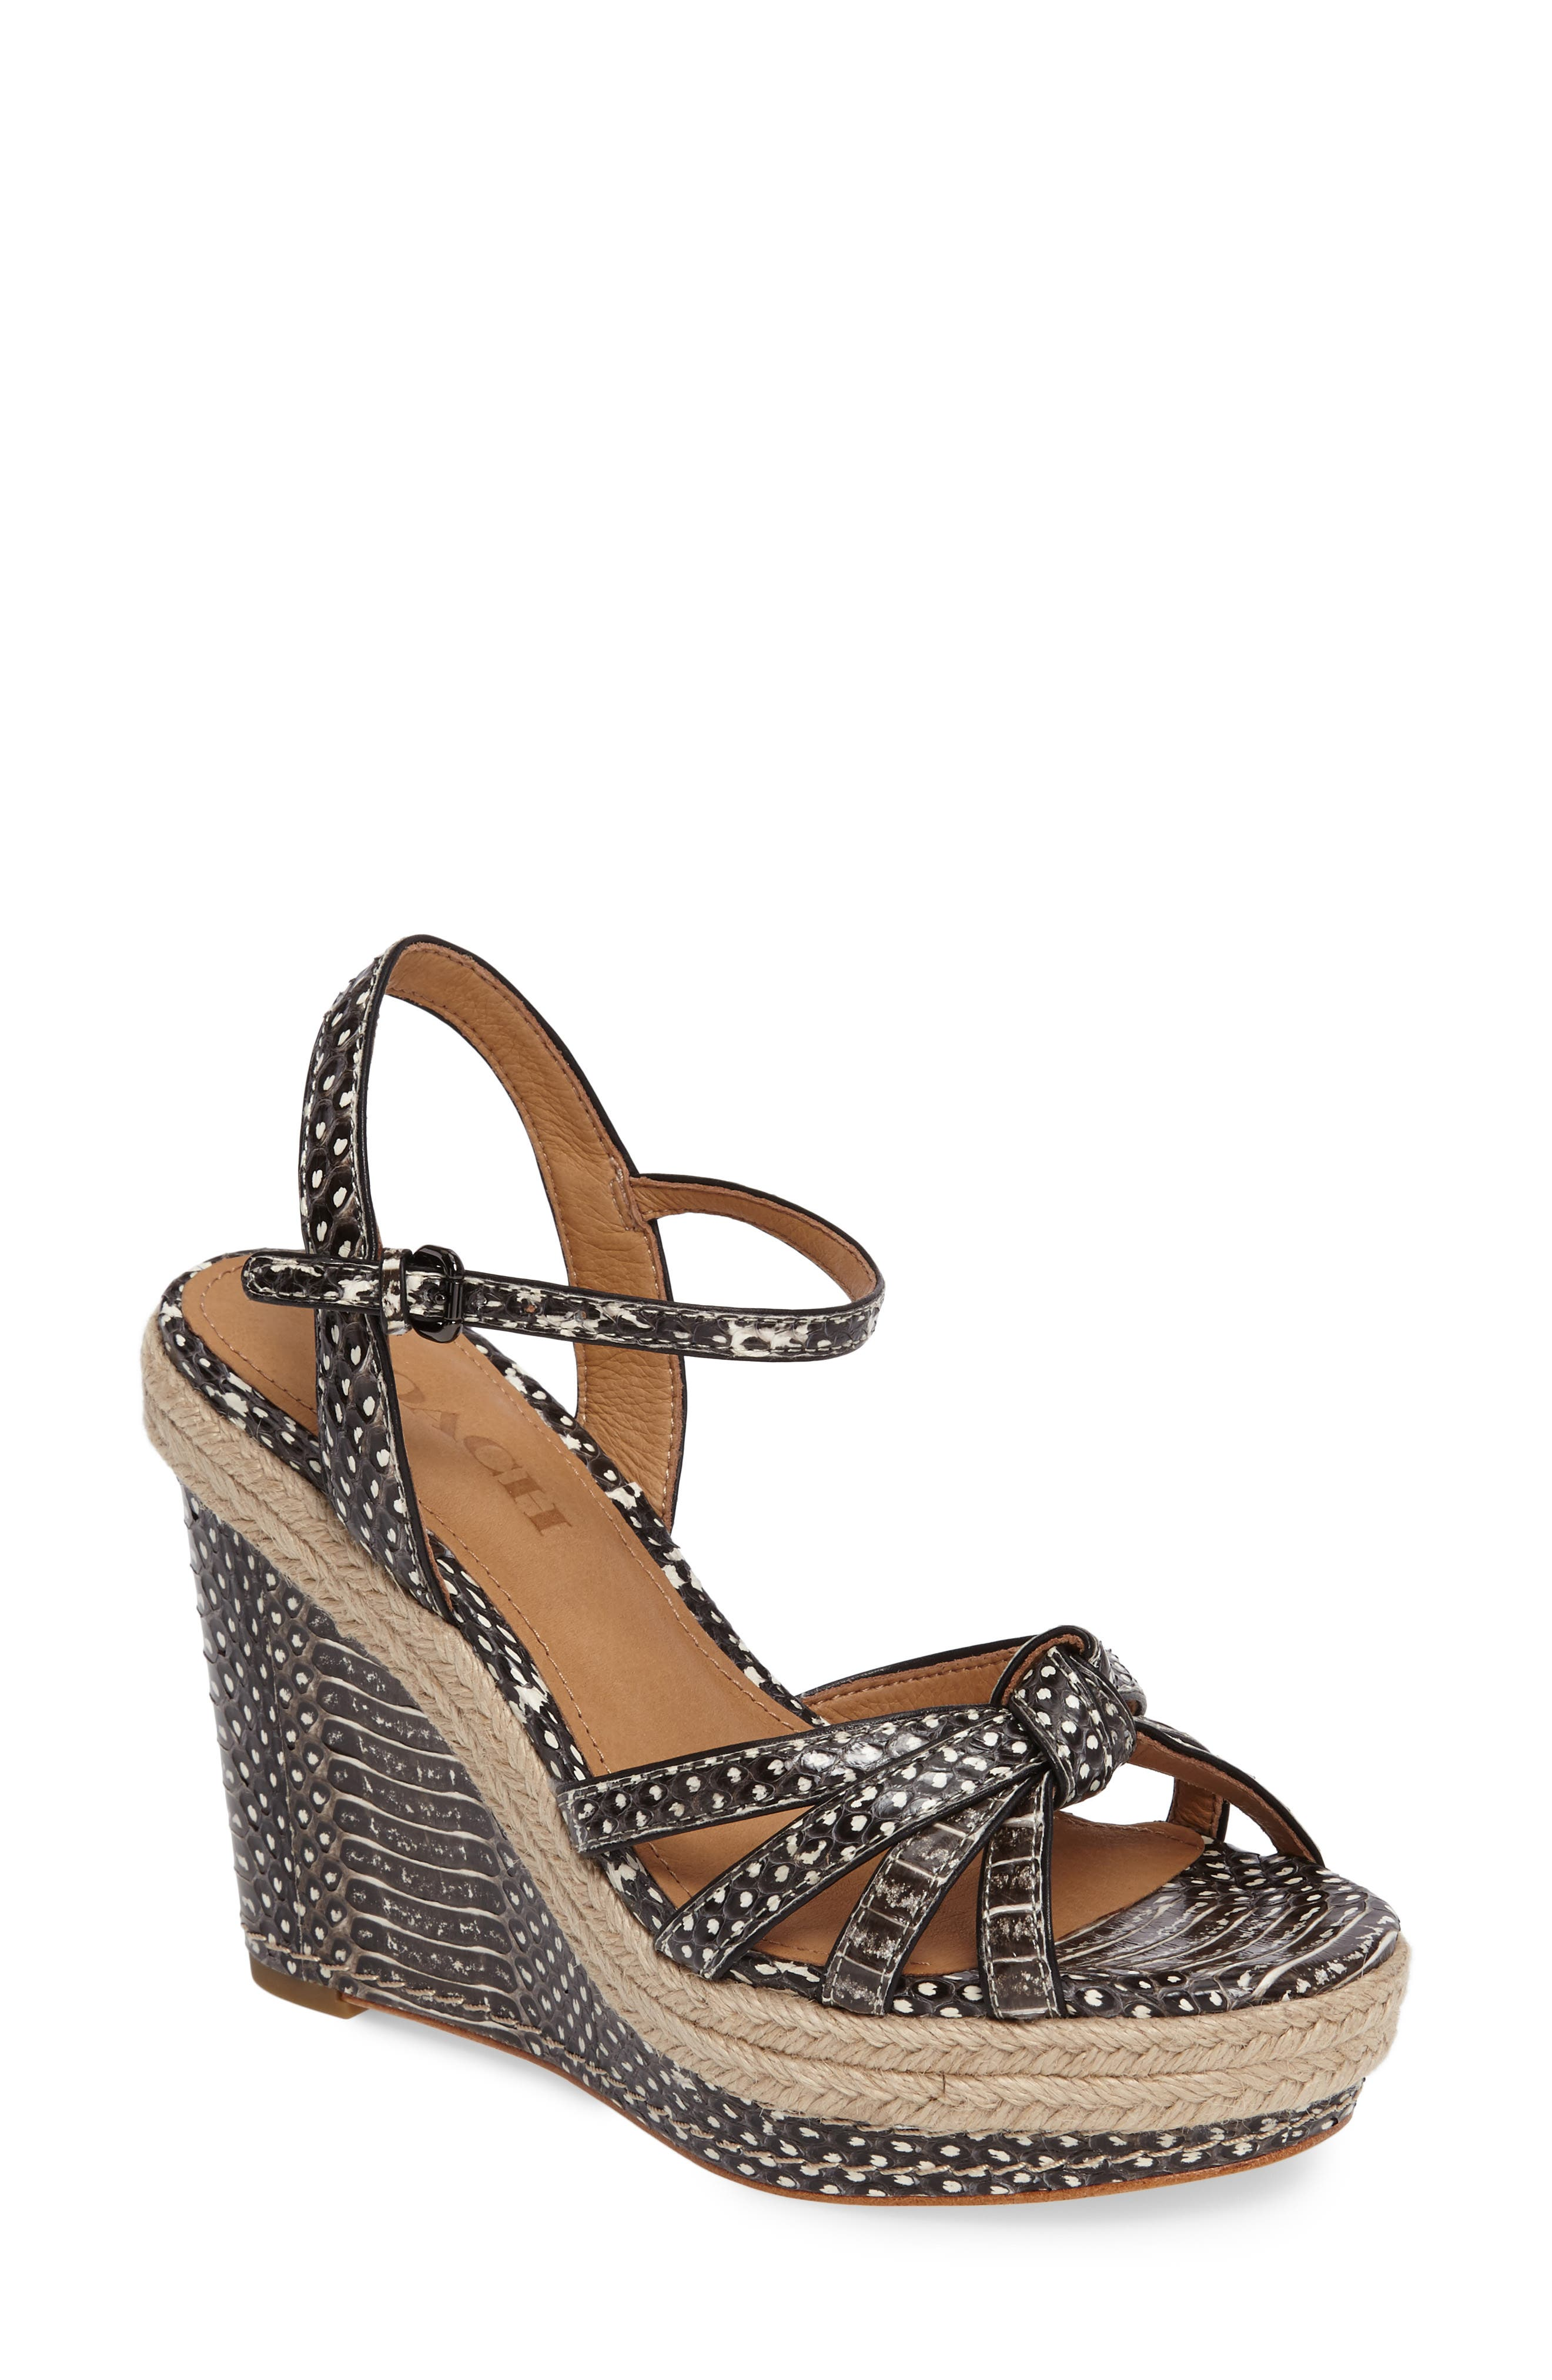 COACH Dalton Espadrille Wedge Sandal (Women)